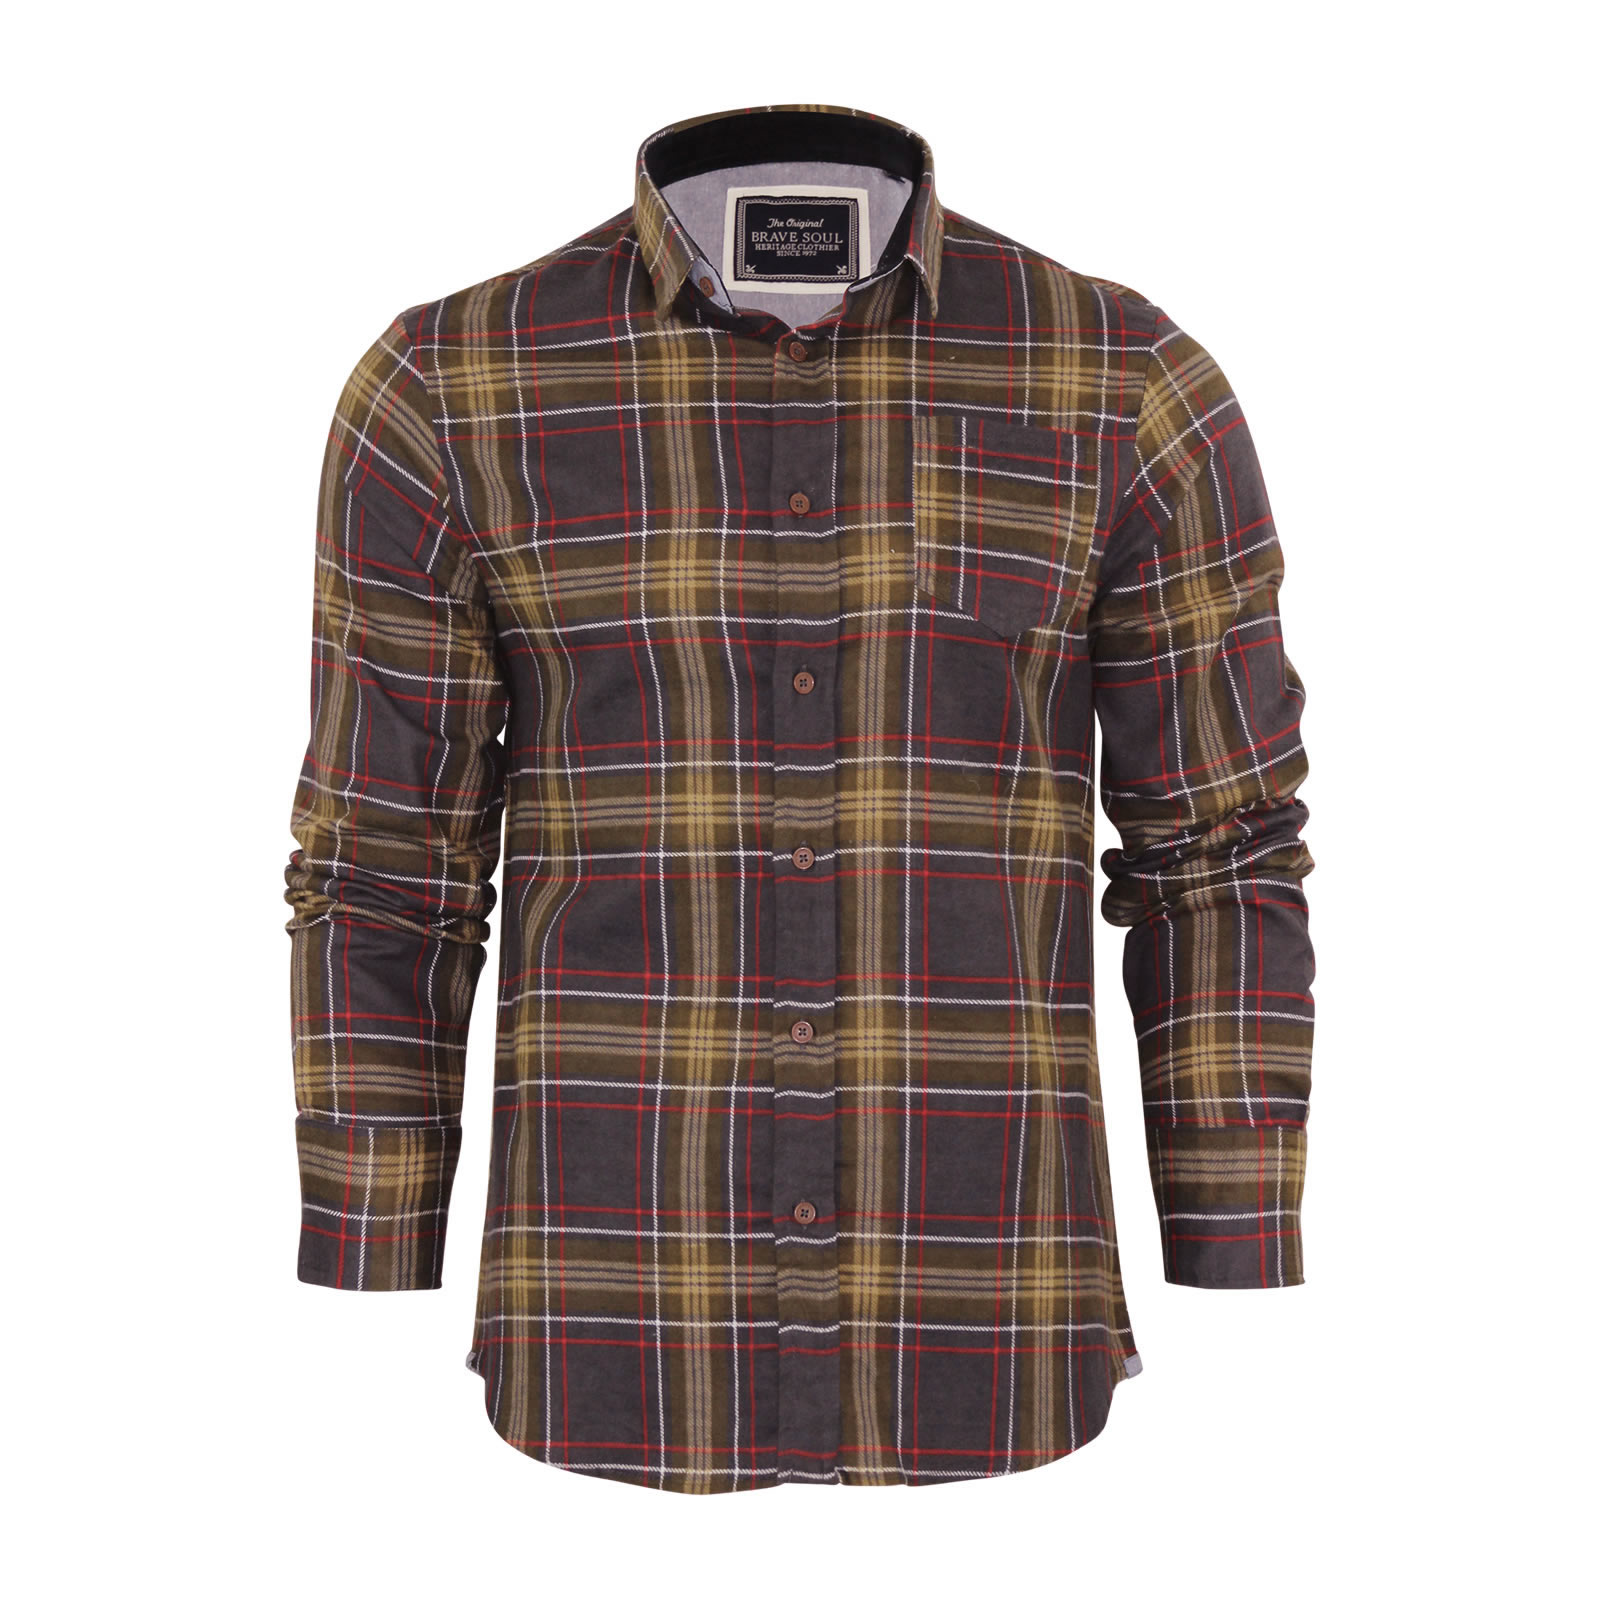 Mens check shirt brave soul flannel brushed cotton long for Mens long sleeve flannel shirts